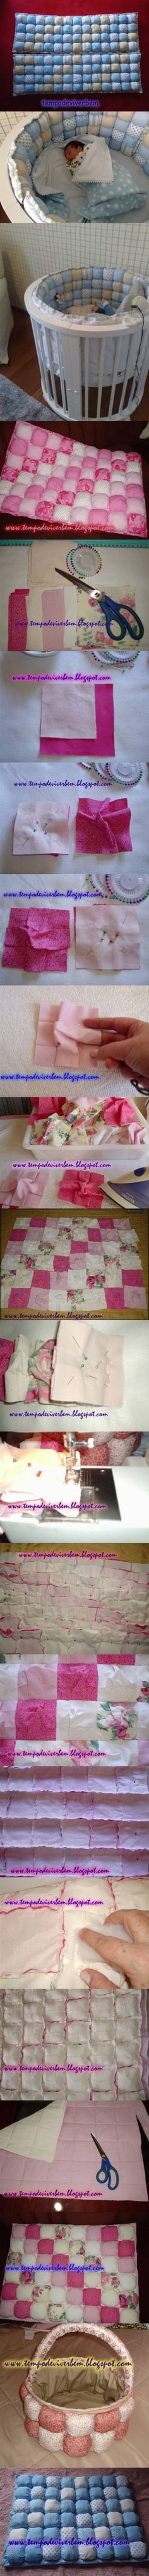 DIY Puff Infant Changing Station baby diy easy crafts diy ideas diy crafts do it yourself easy diy diy photos diy tutorials diy tutorial ideas infant Quilt Baby, Diy Puffs, Sewing Crafts, Sewing Projects, Baby Changing Station, Puff Quilt, Diy Bebe, Patchwork Baby, Baby Crafts